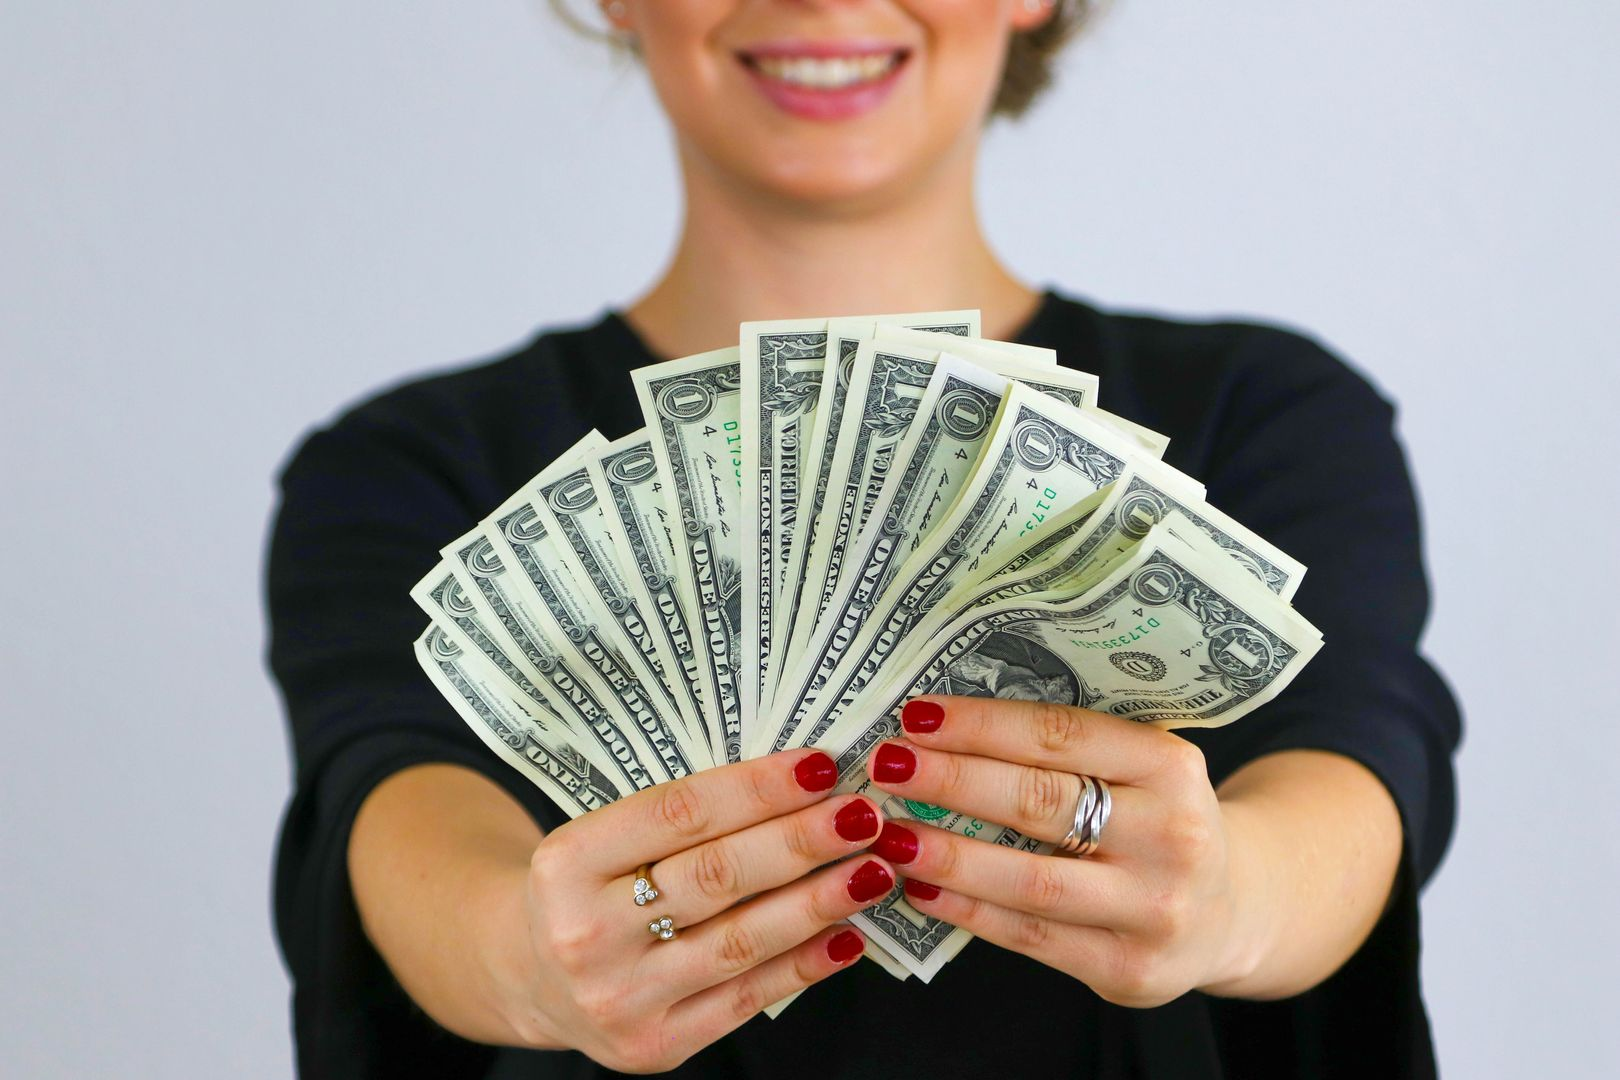 Woman holding out an unfurled wad of dollar bills, indicating that among the benefits of an emergency fund is that it allows you to make more money